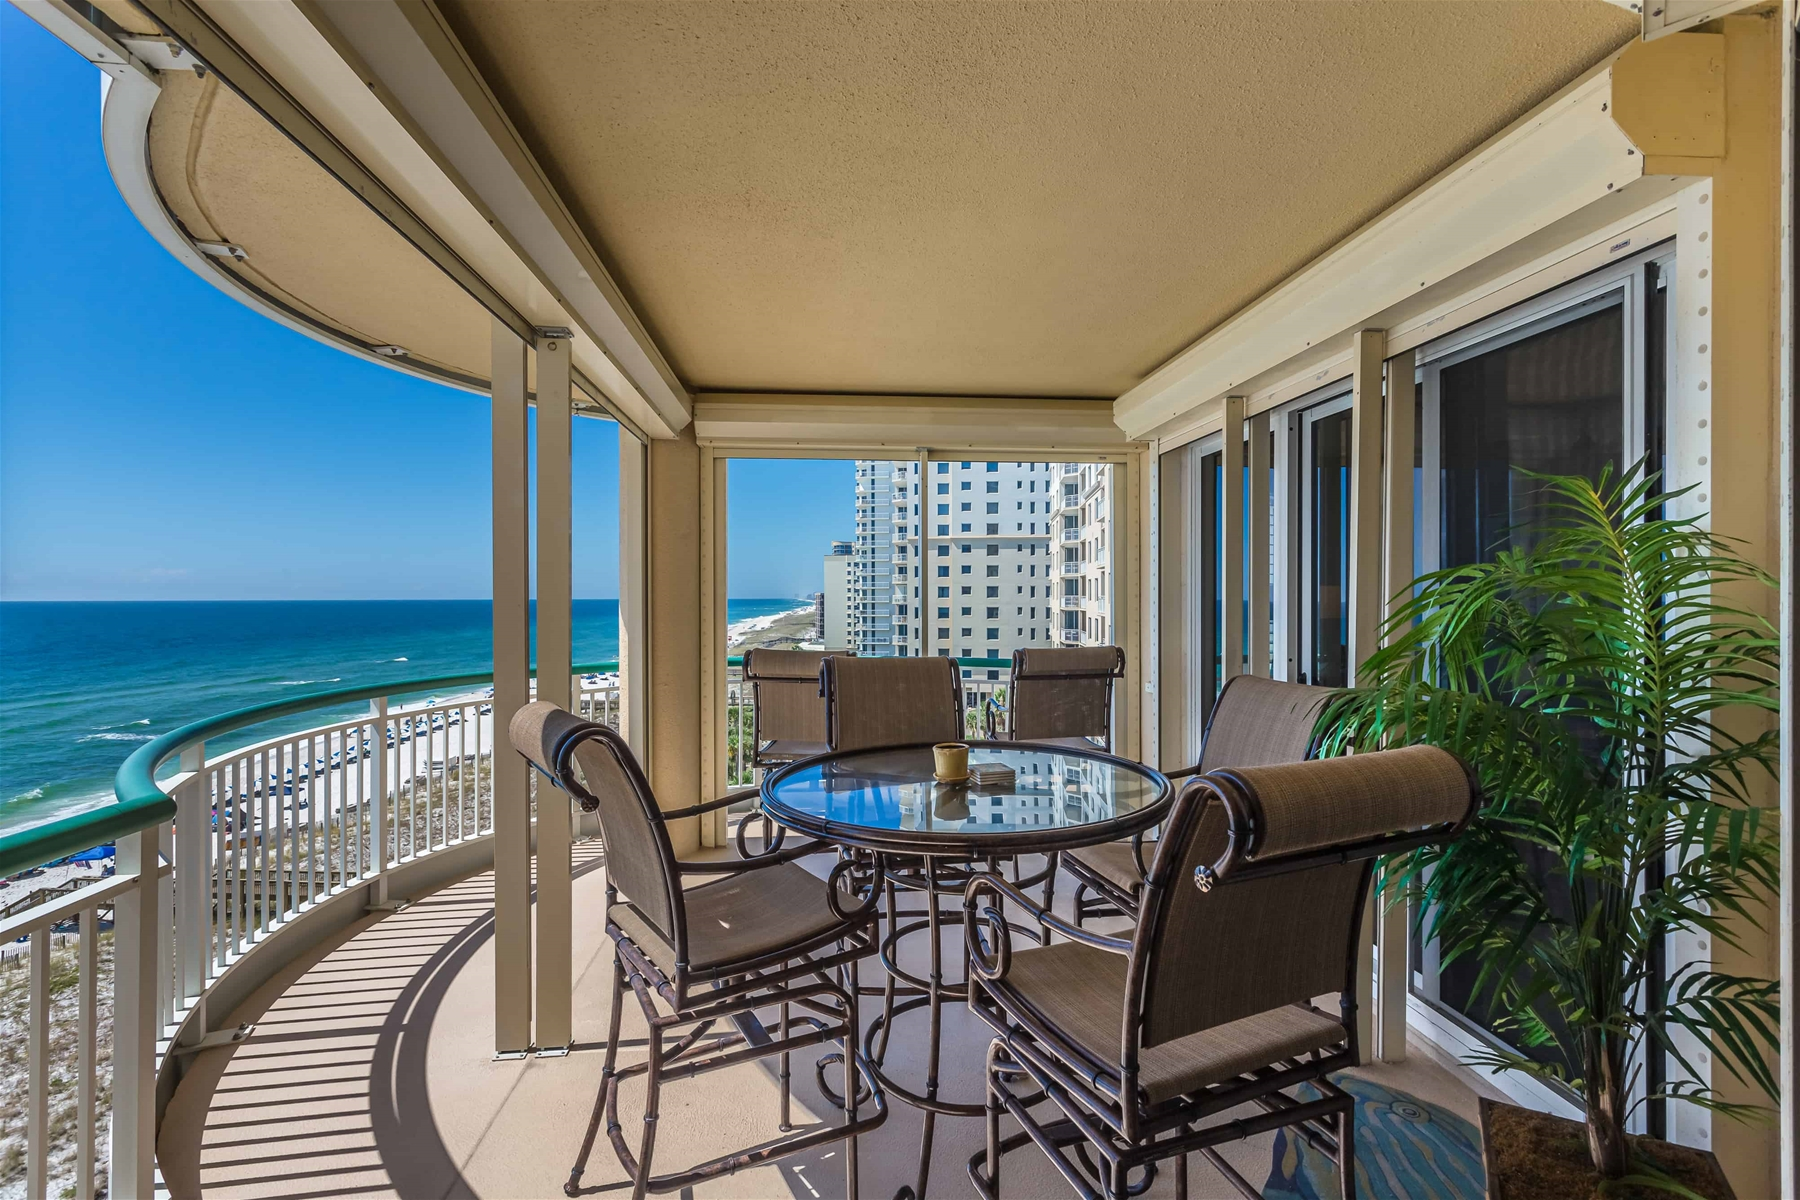 Interior view of the Verandas condos on Ocean Drive Beach North Myrtle Beach